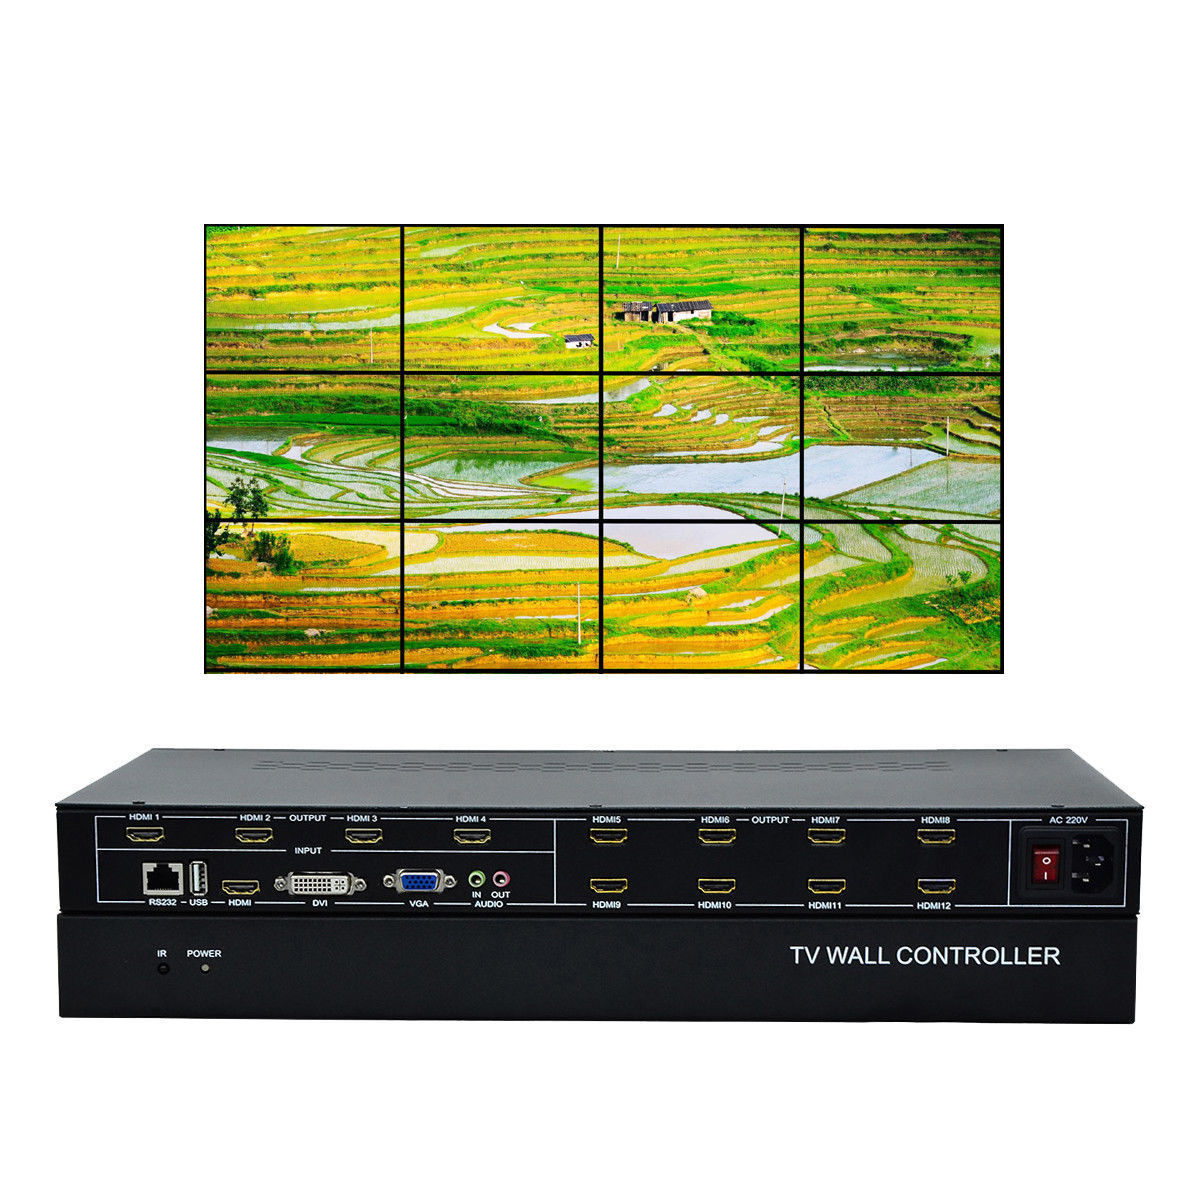 ESZYM 12 Canali TV Controller Video Wall 3x4 2x6 2x5 HDMI DVI VGA USB Processore Video